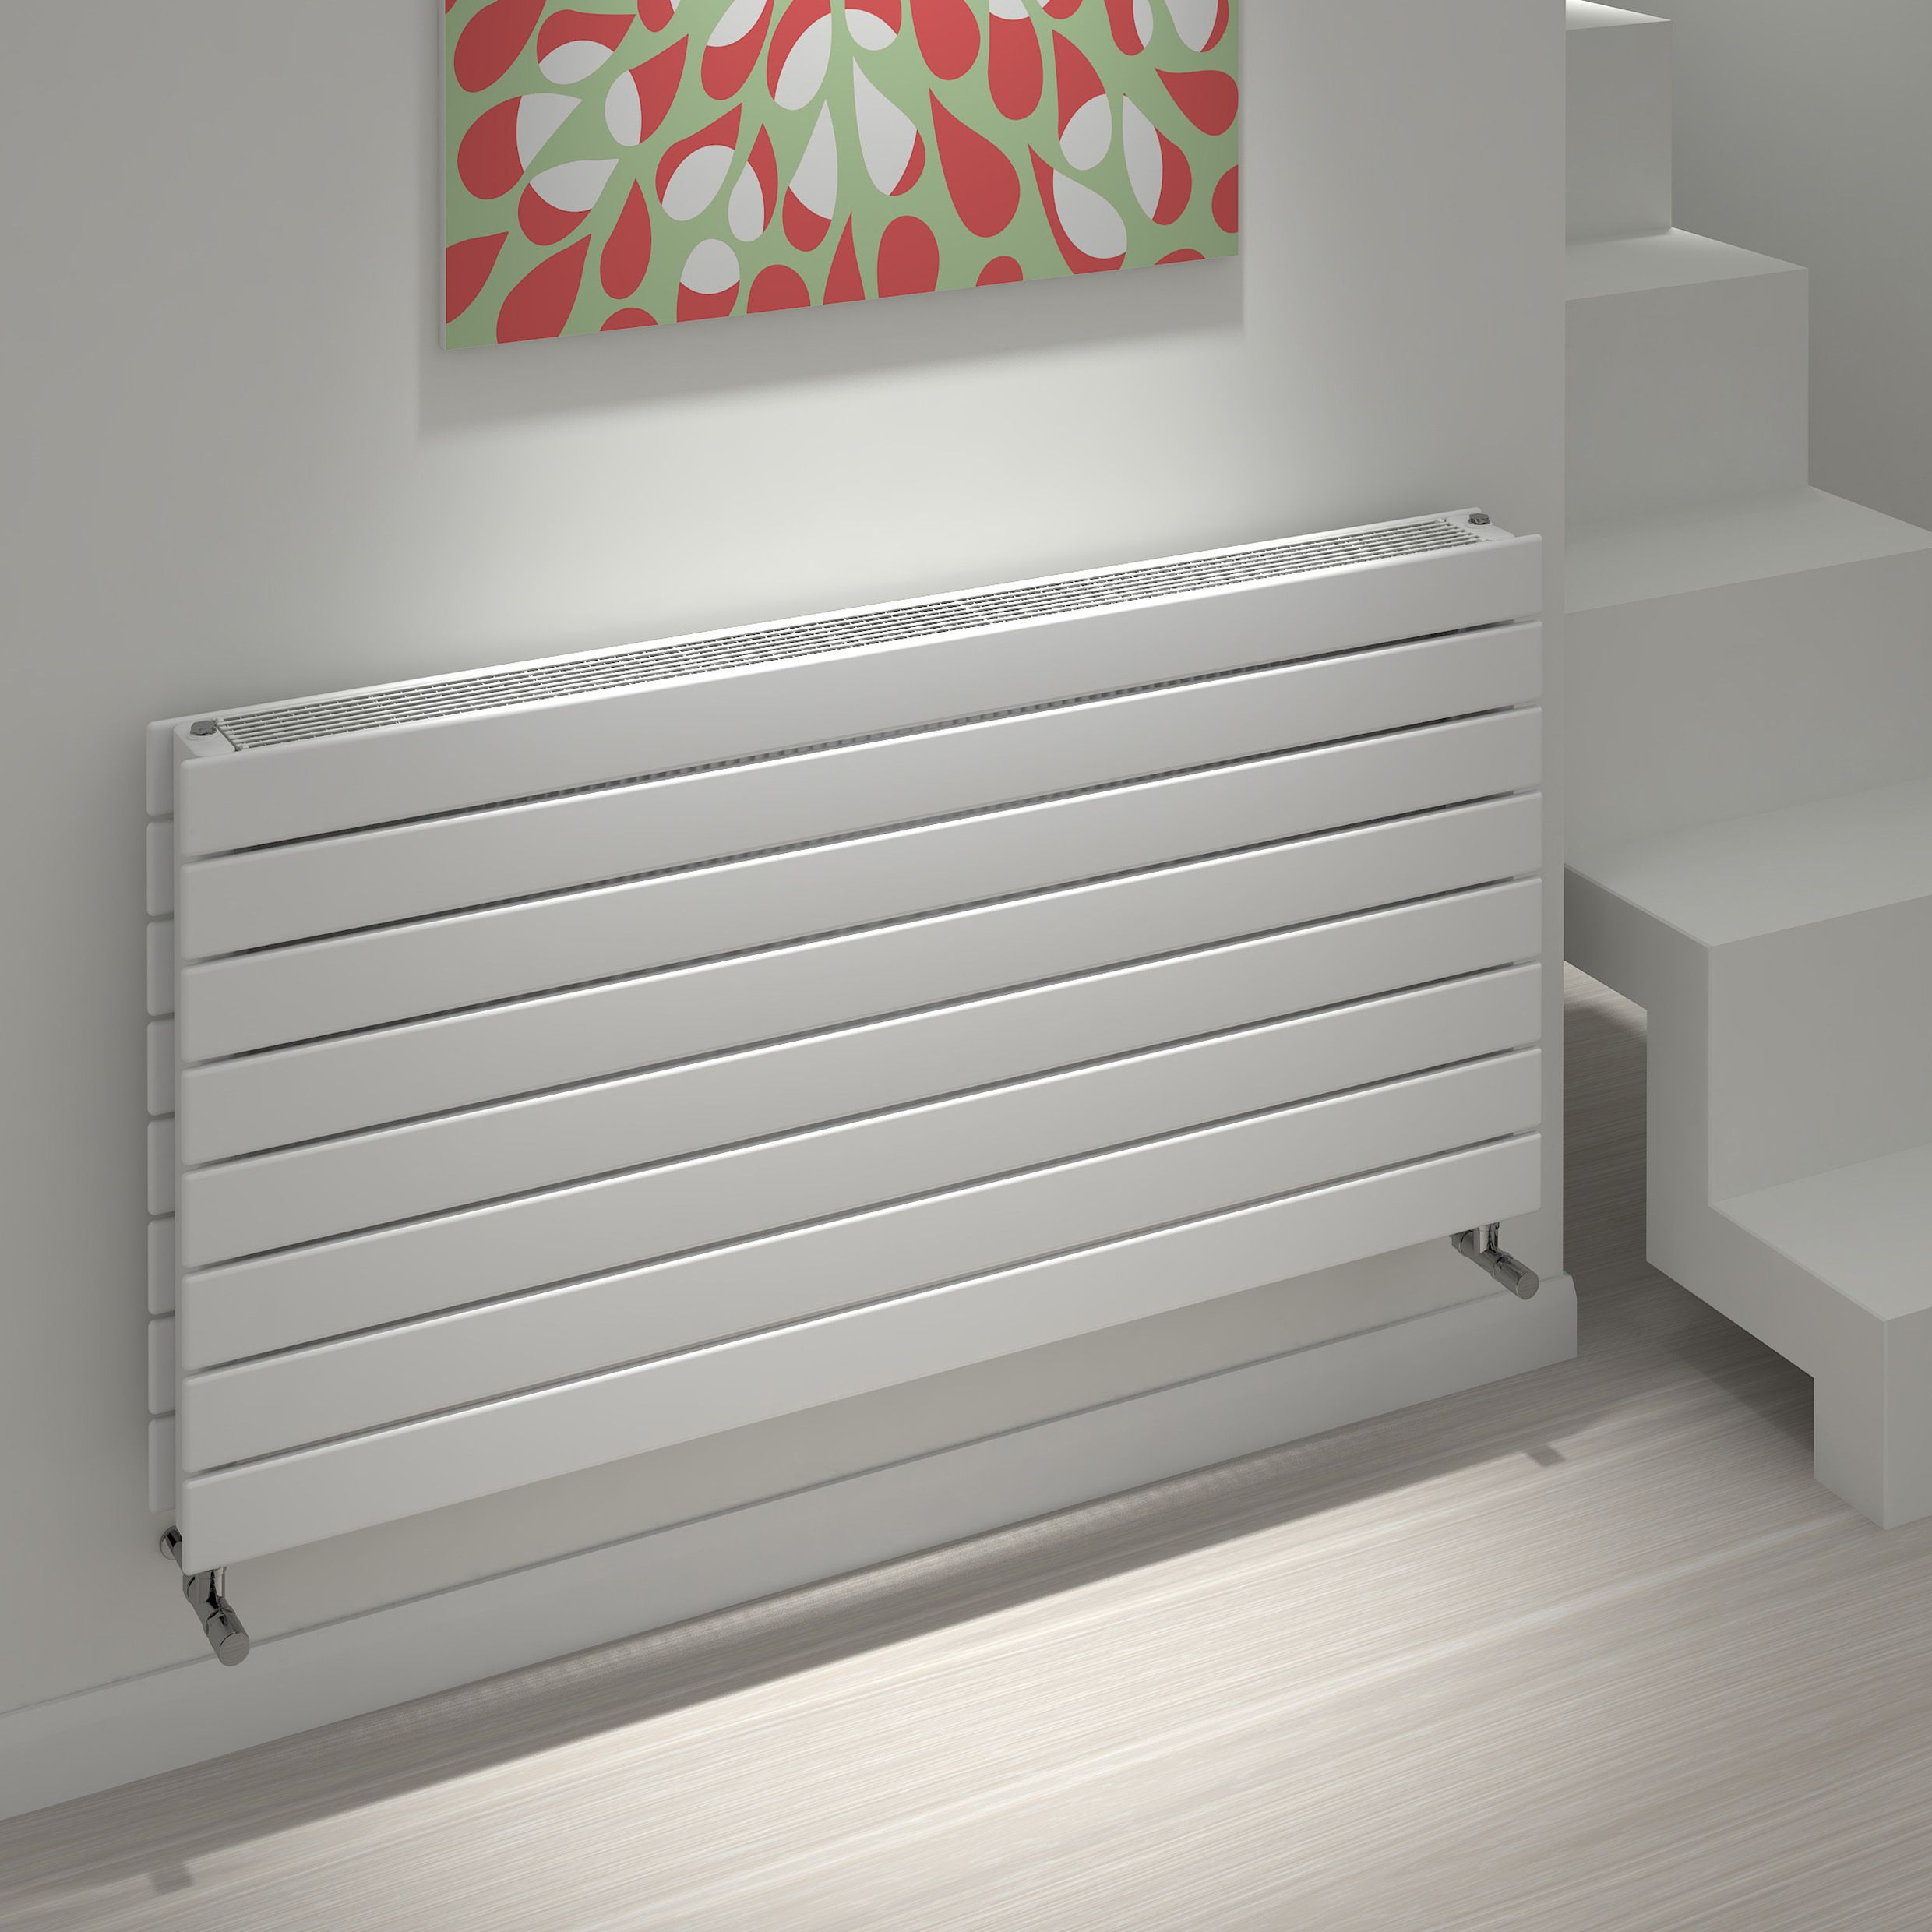 Kudox Tira Horizontal Radiator White, (H)588 mm (W)1200